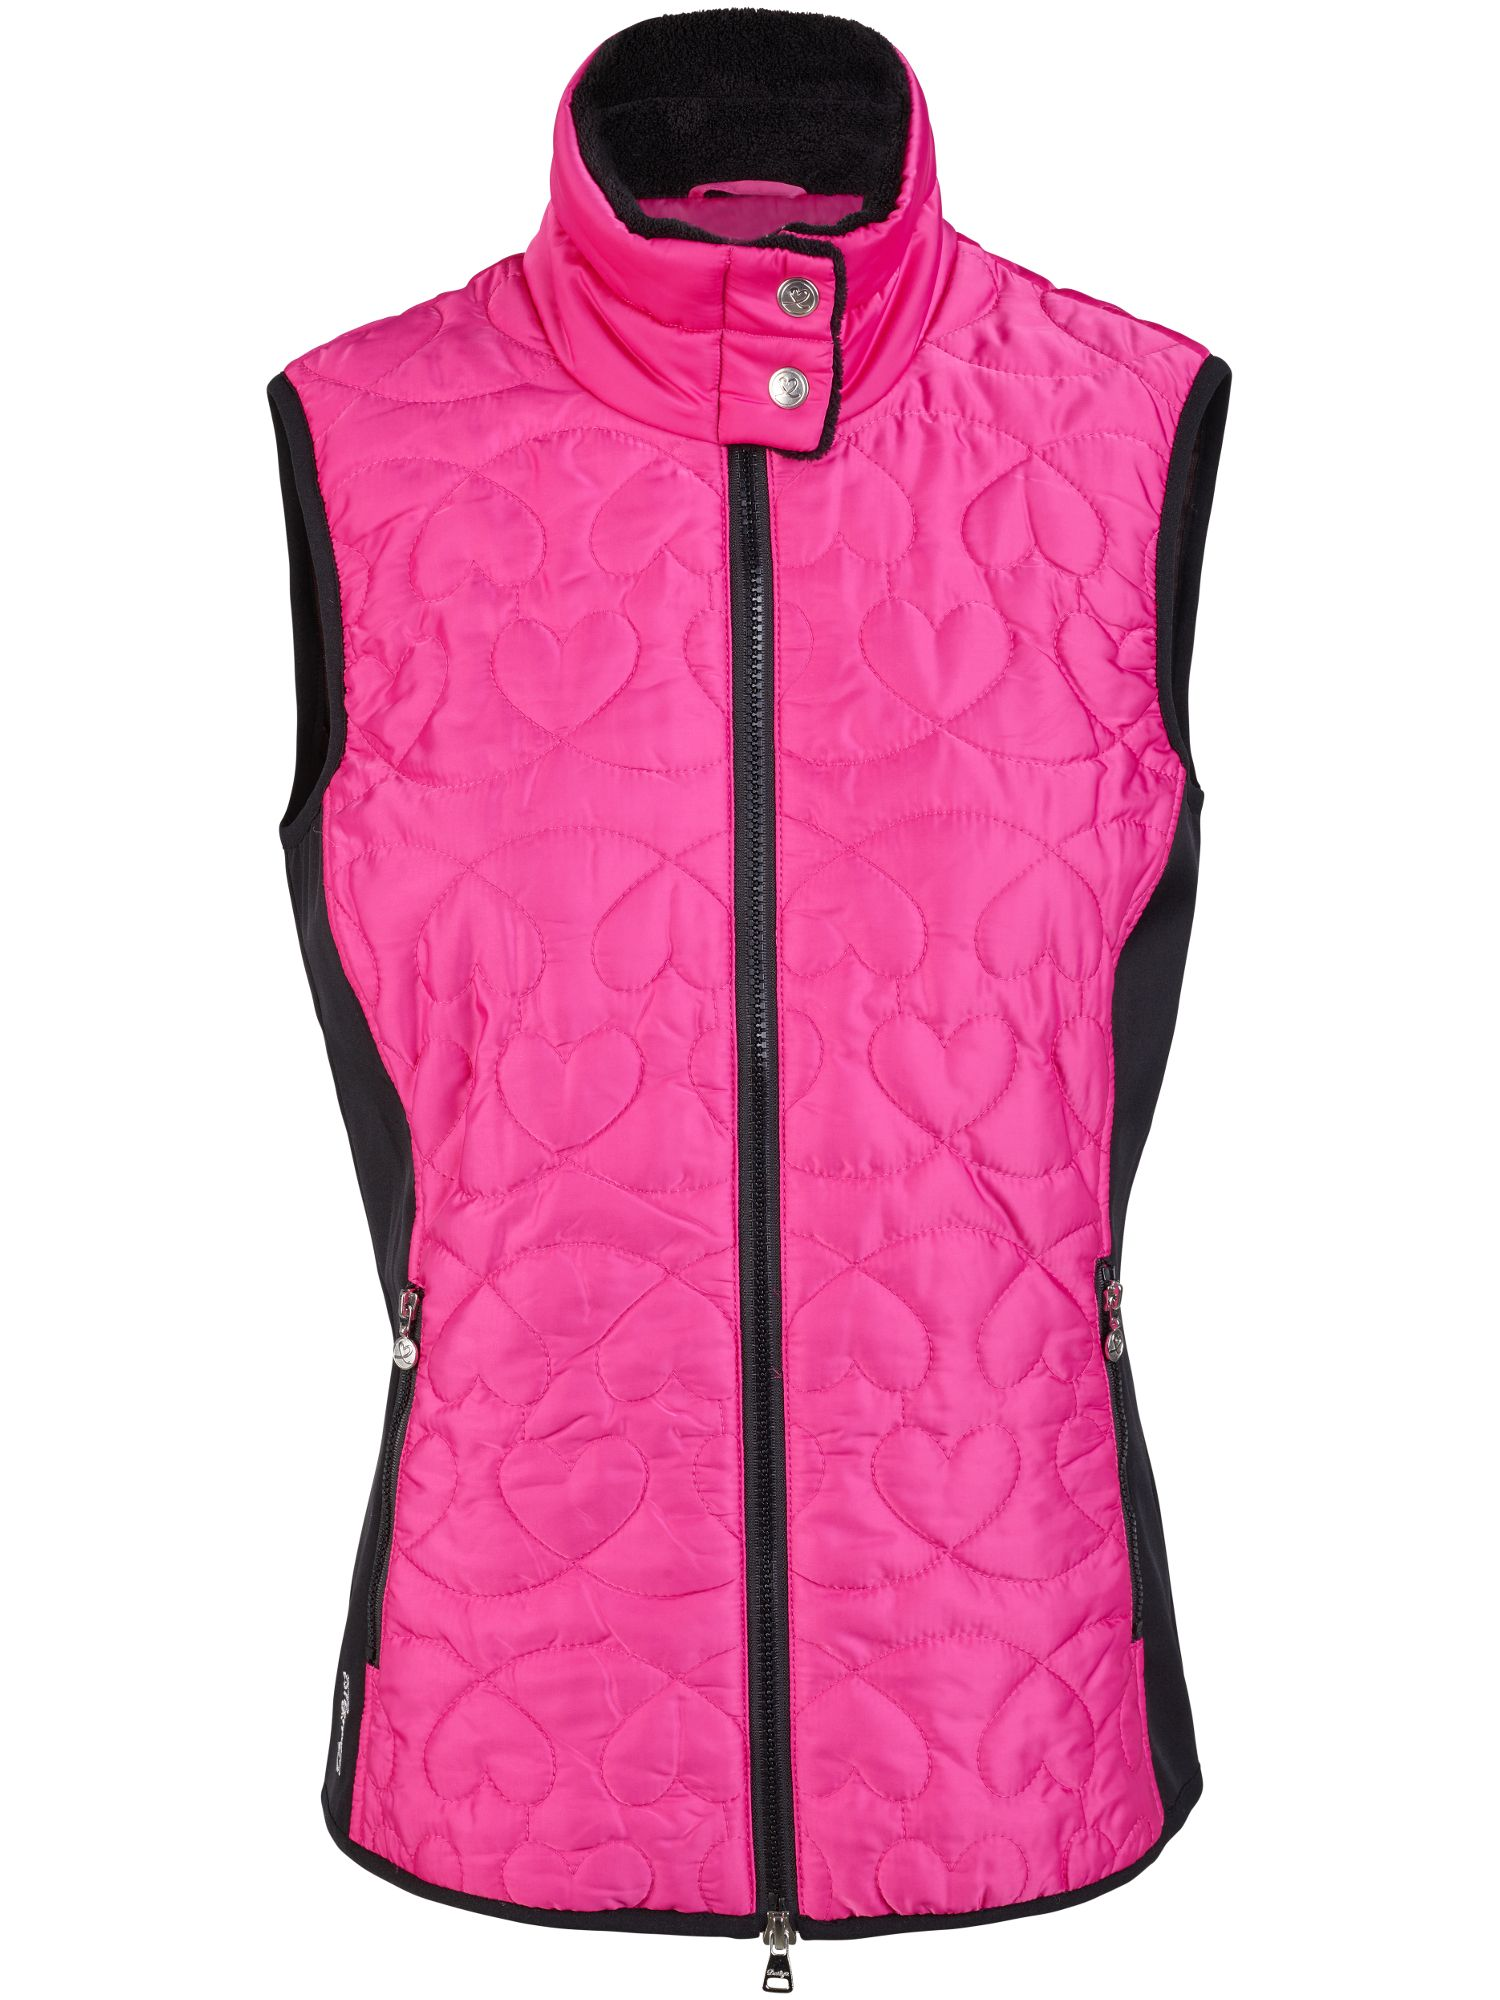 Daily Sports Harley Quilted Gilet, Red